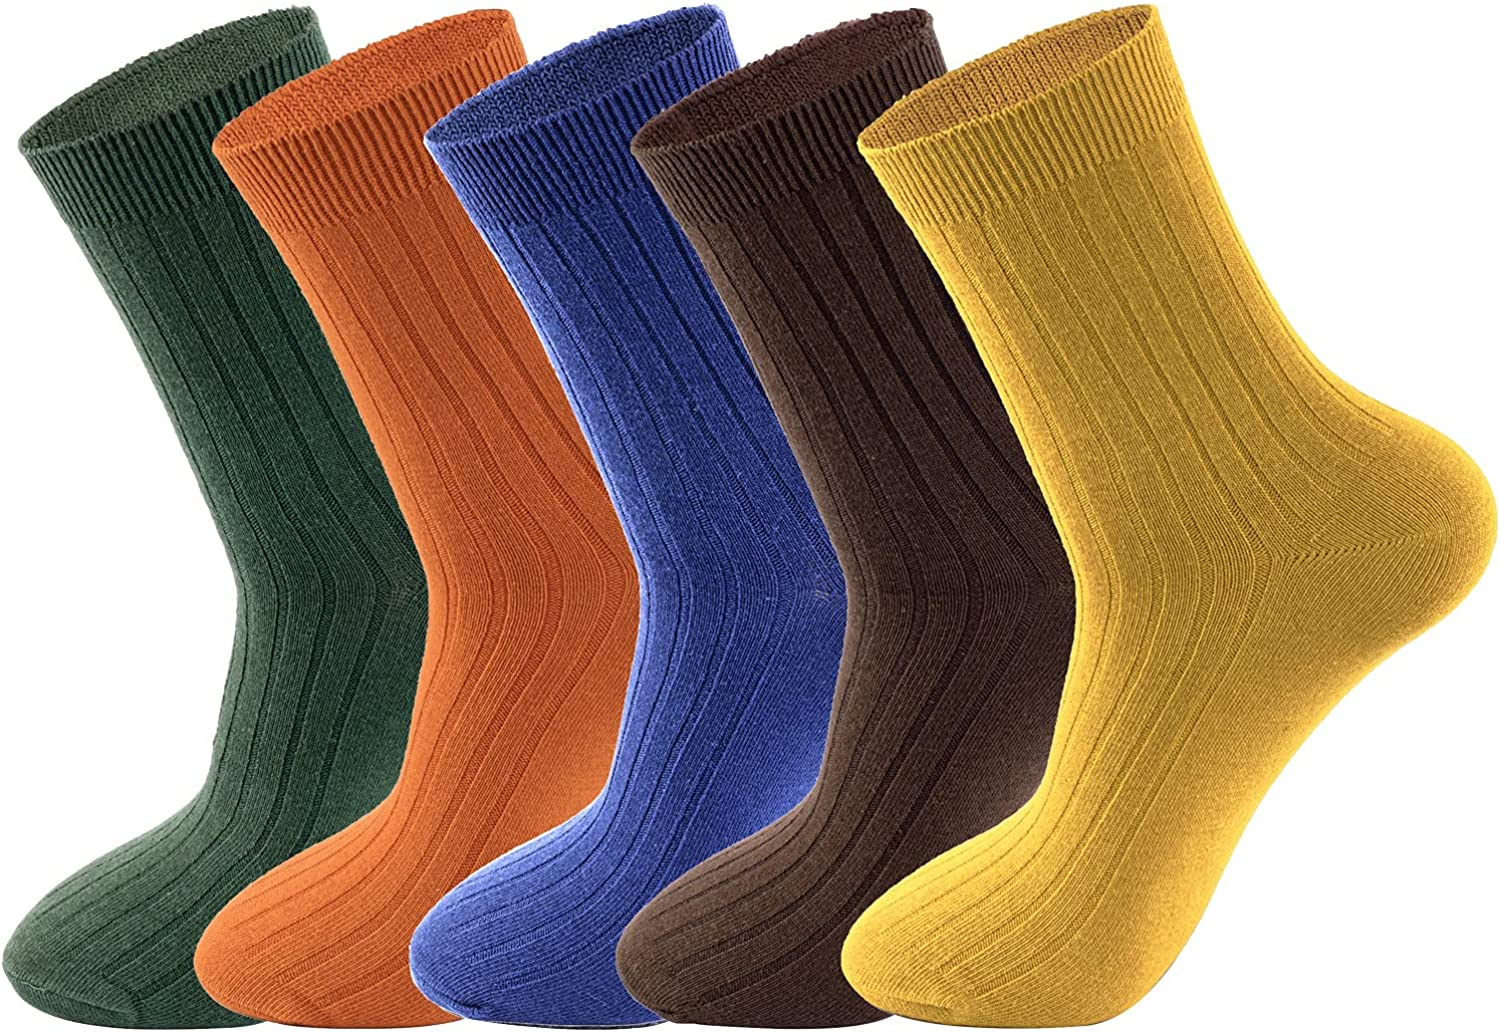 Lacholin 5 Pair Bright Solid Color Casual Crew Socks 10-13 for Men, Comfort & Breathable, Mens Fashion Cotton Dress Socks